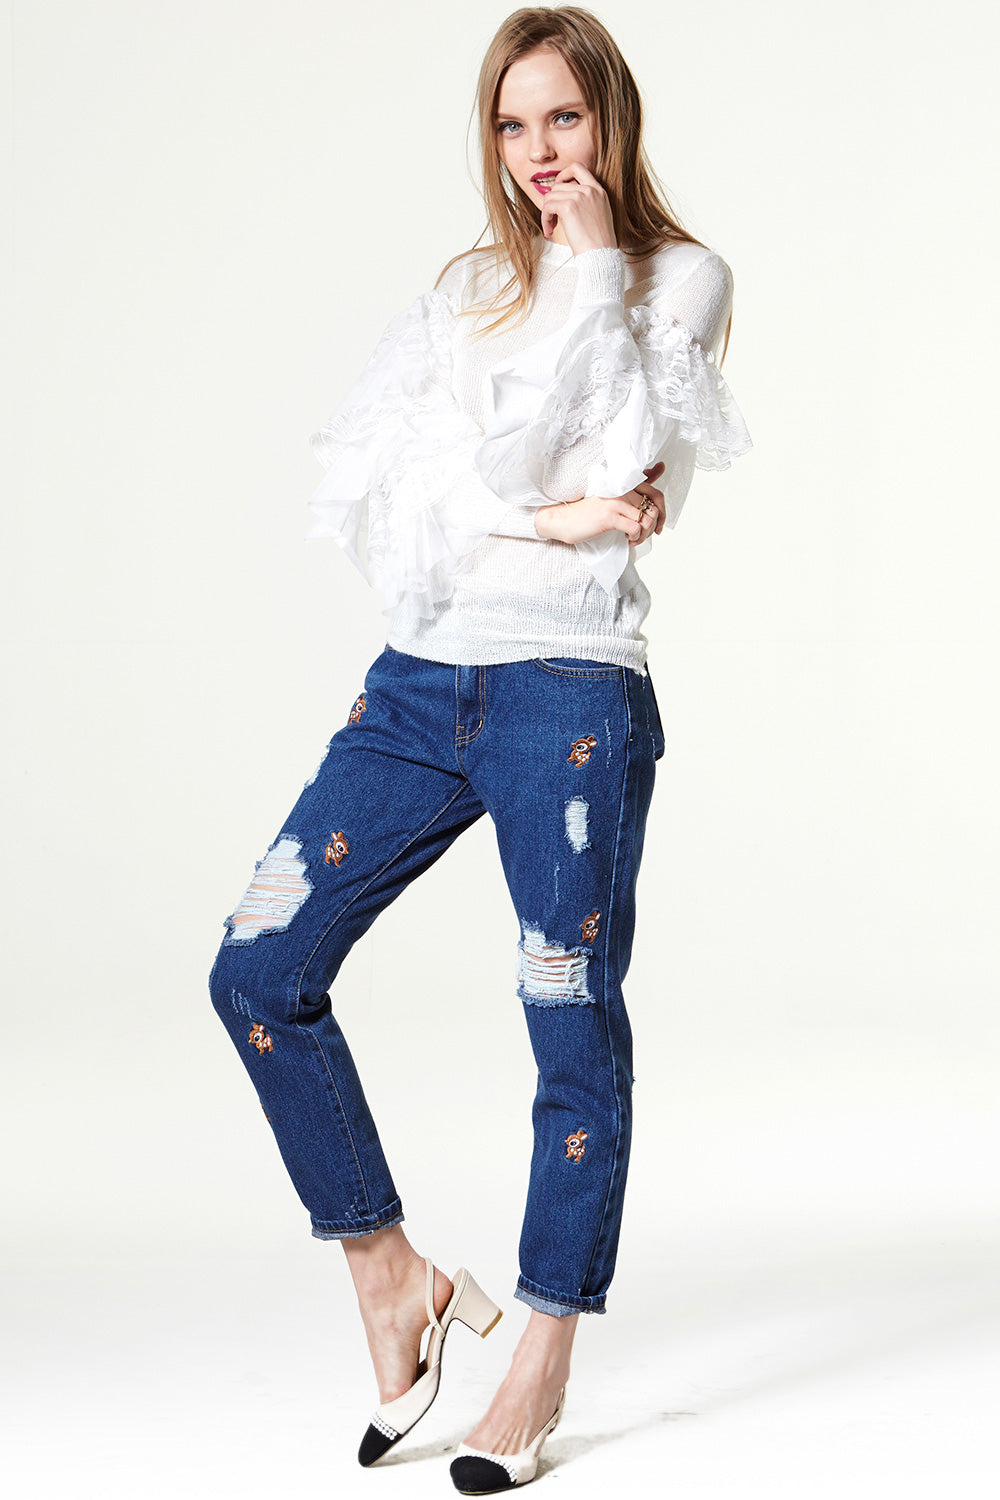 Oh My Deer Embroidery Jeans